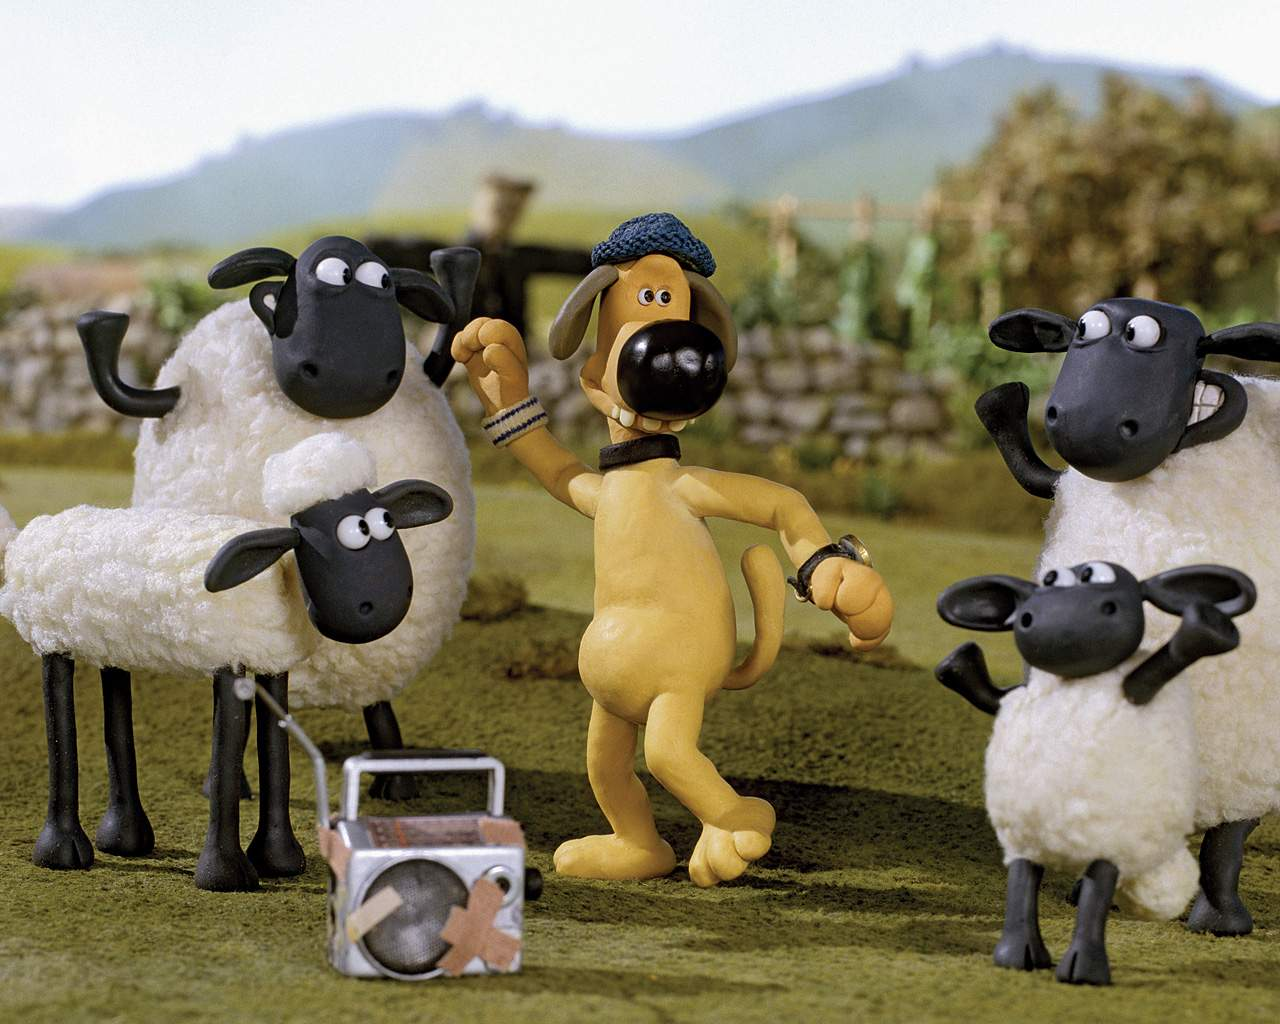 Shaun the Sheep Cartoon Wallpaper For Free